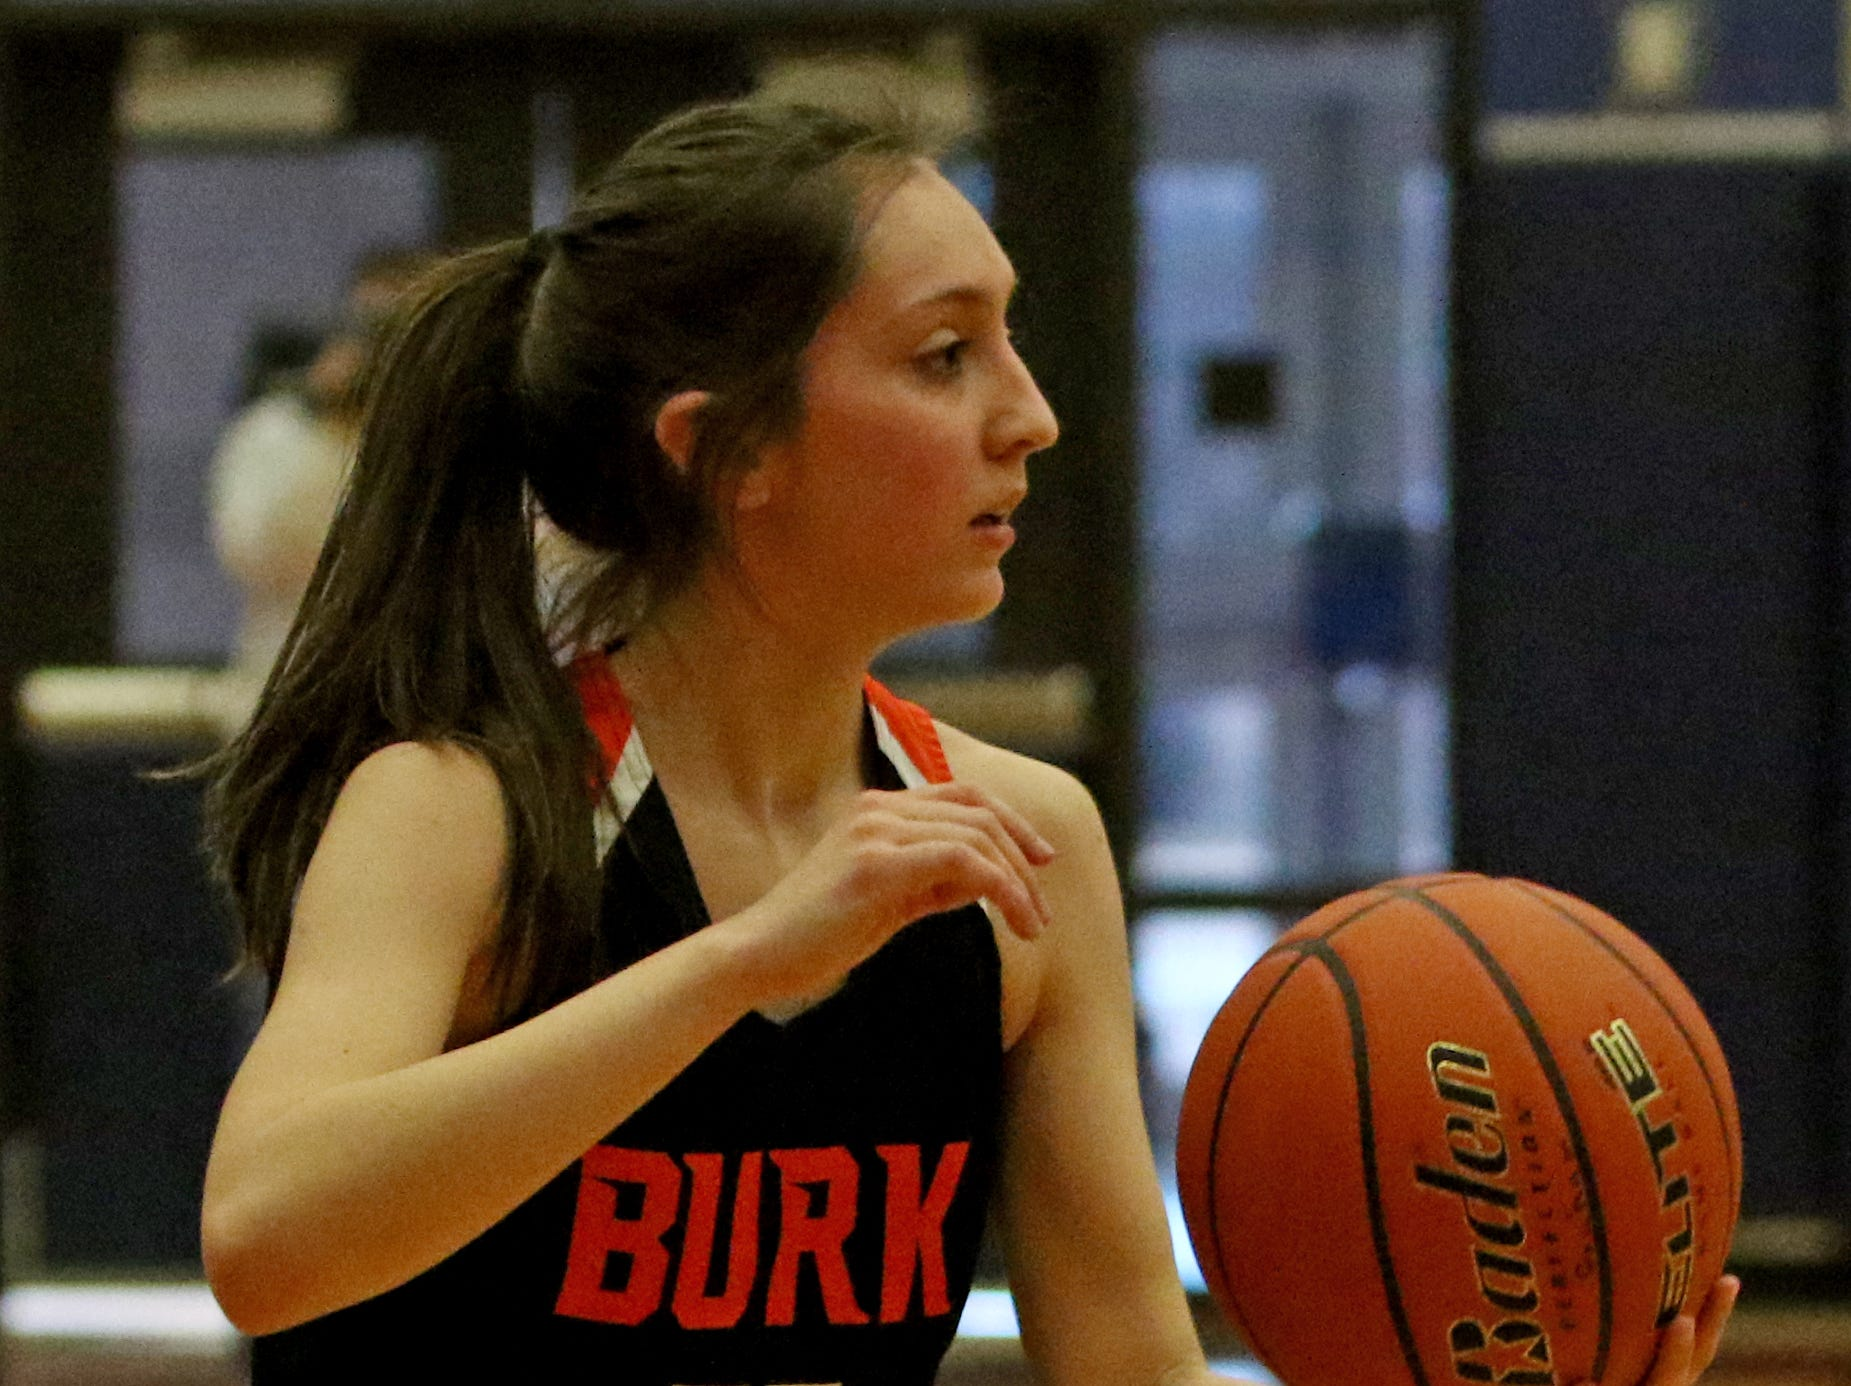 Burkburnett's Sarah Nolan holds the ball in the game against Graham Friday, Jan. 4, 2019, in Graham. The Lady Blues defeated the Lady Bulldogs 51-33.